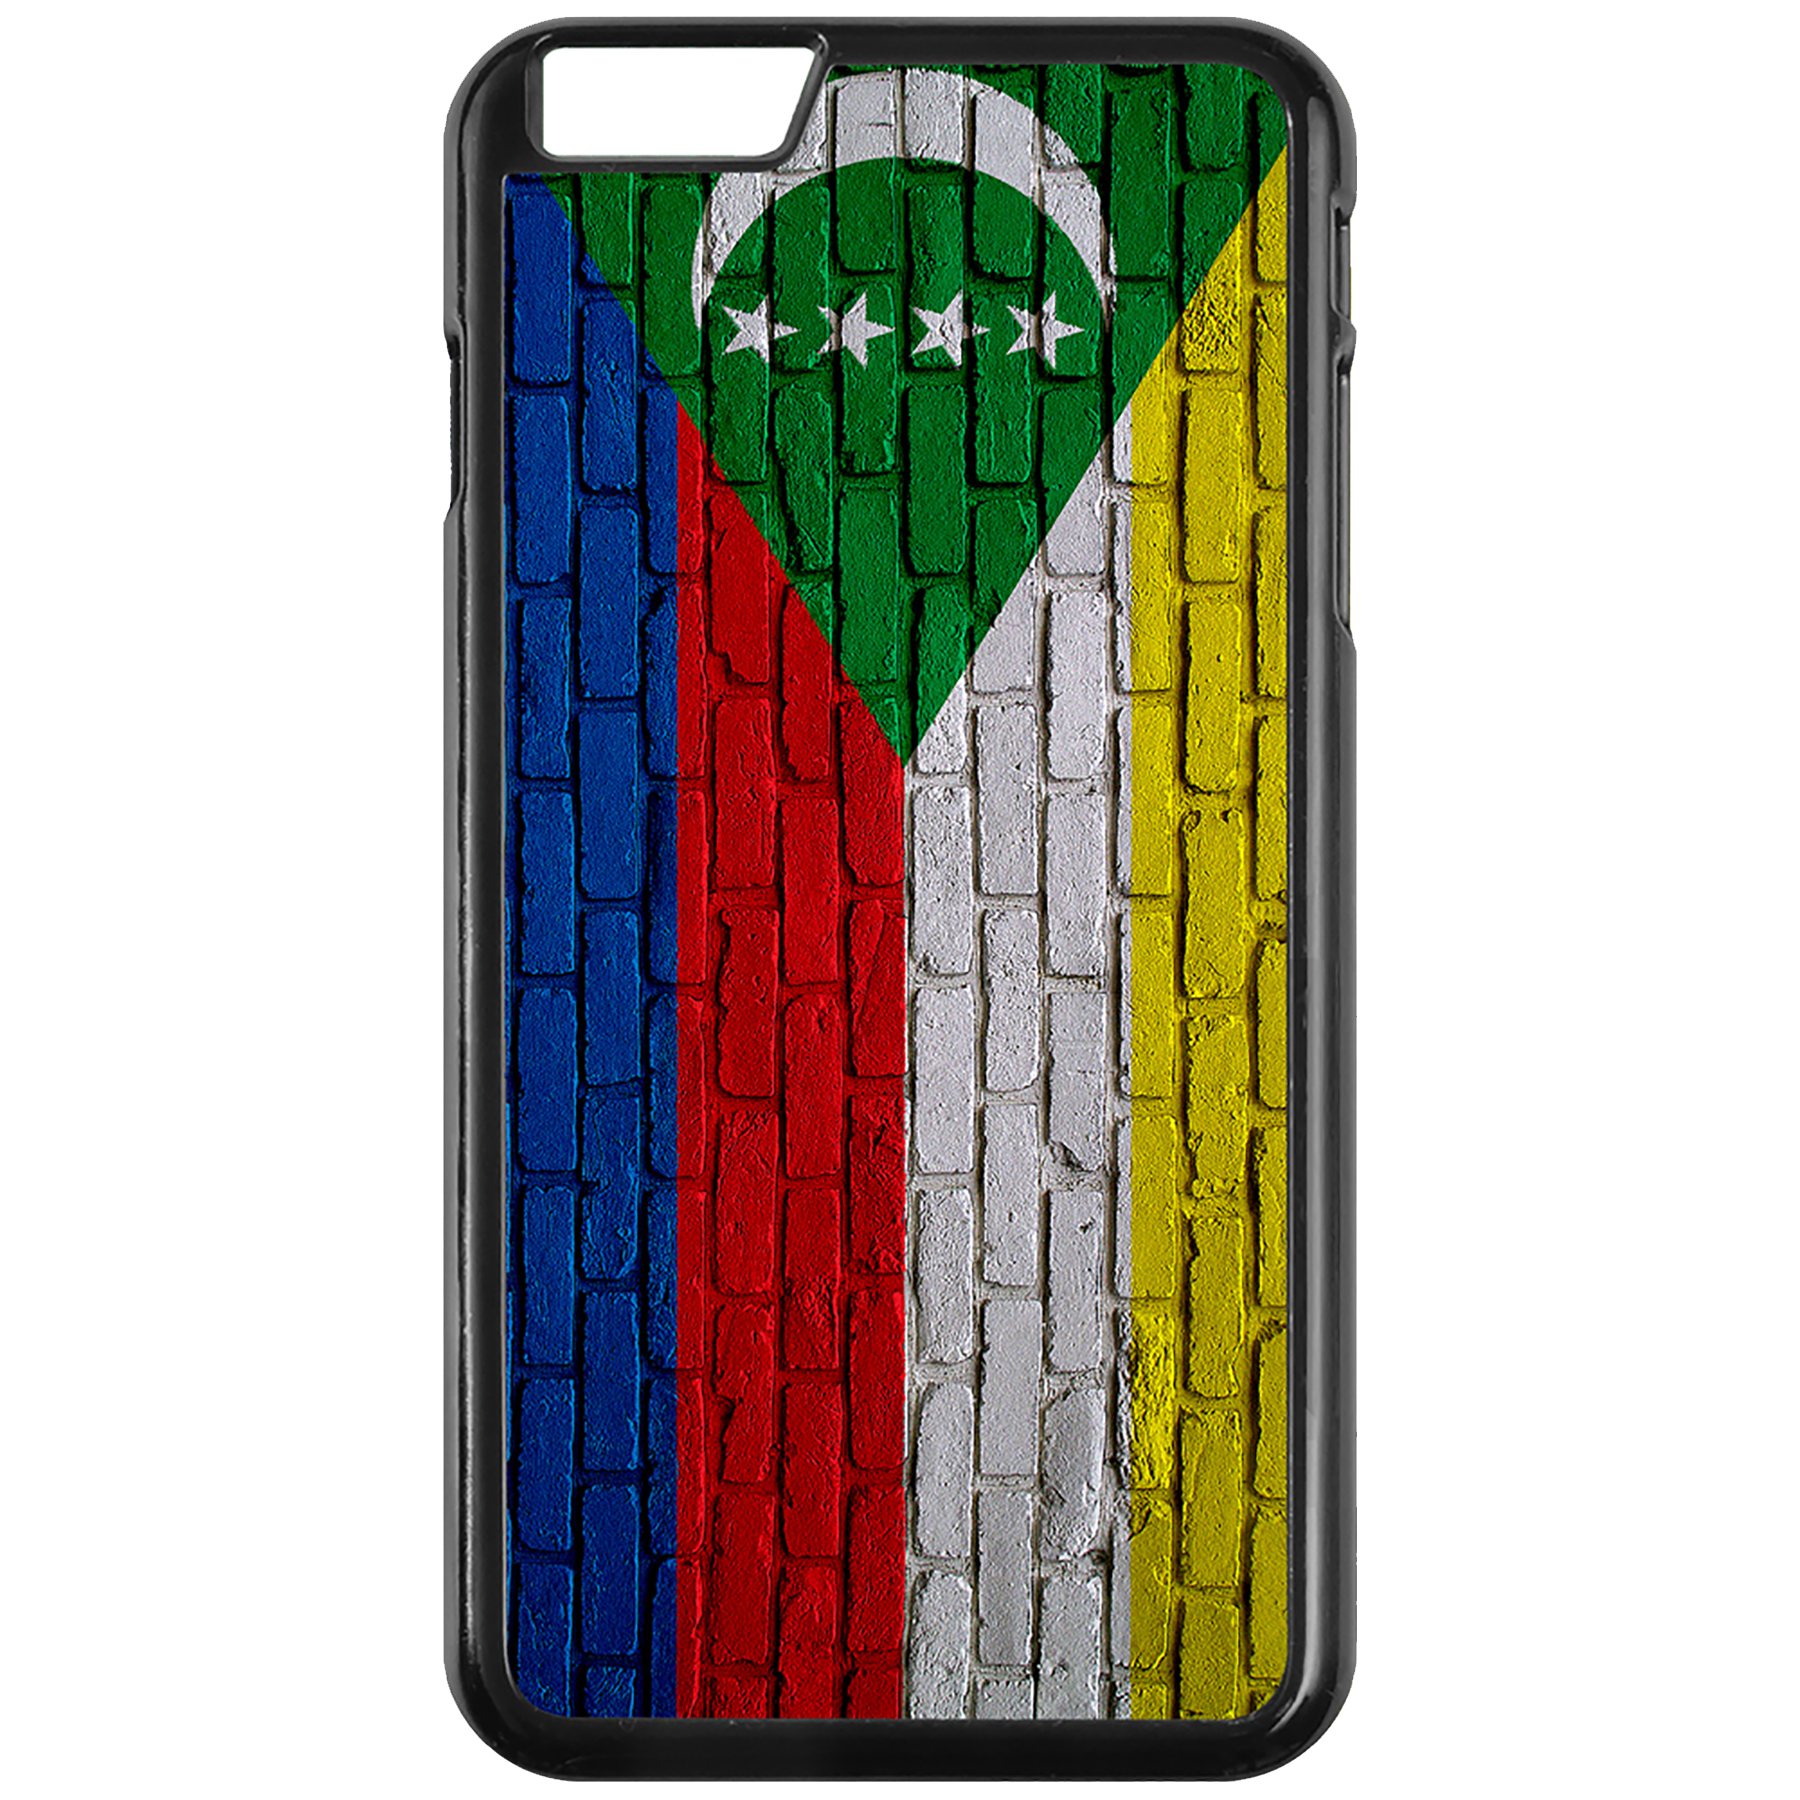 Apple-iPhone-Case-with-Flag-of-Comoros-Comorian-Many-Design-Options thumbnail 49